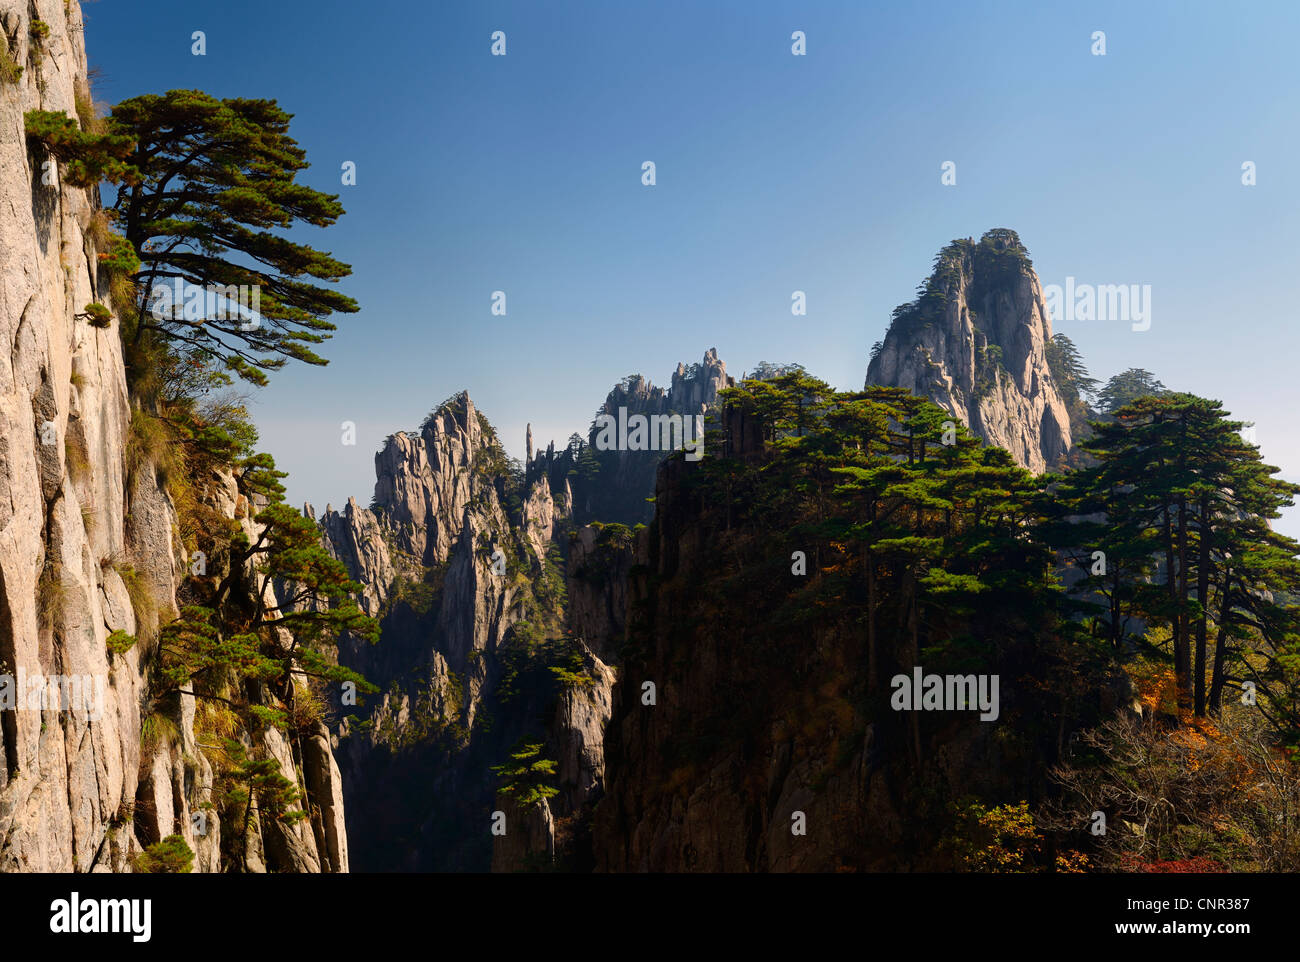 Pine trees on Beginning to Believe Peak with Stalagmite Gang at Mount Huangshan Yellow Mountain China - Stock Image